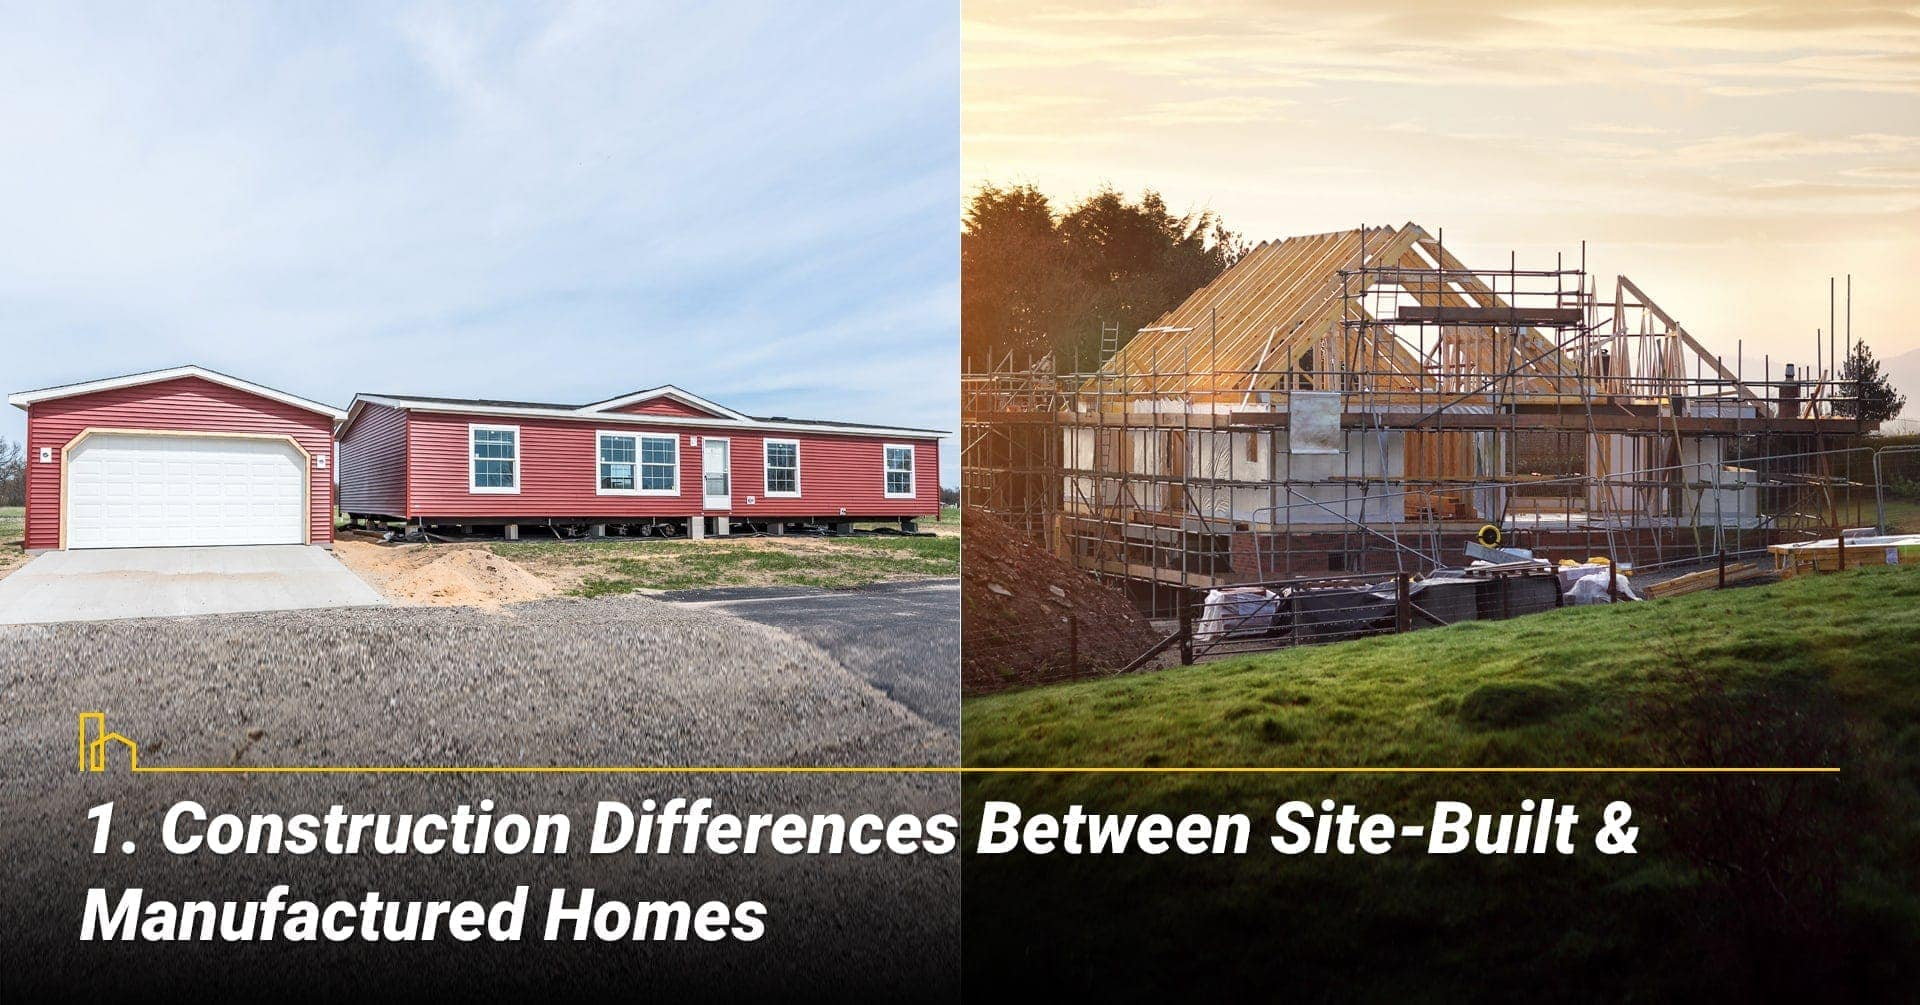 Construction Differences Between Site-Built & Manufactured Homes, they are built differently